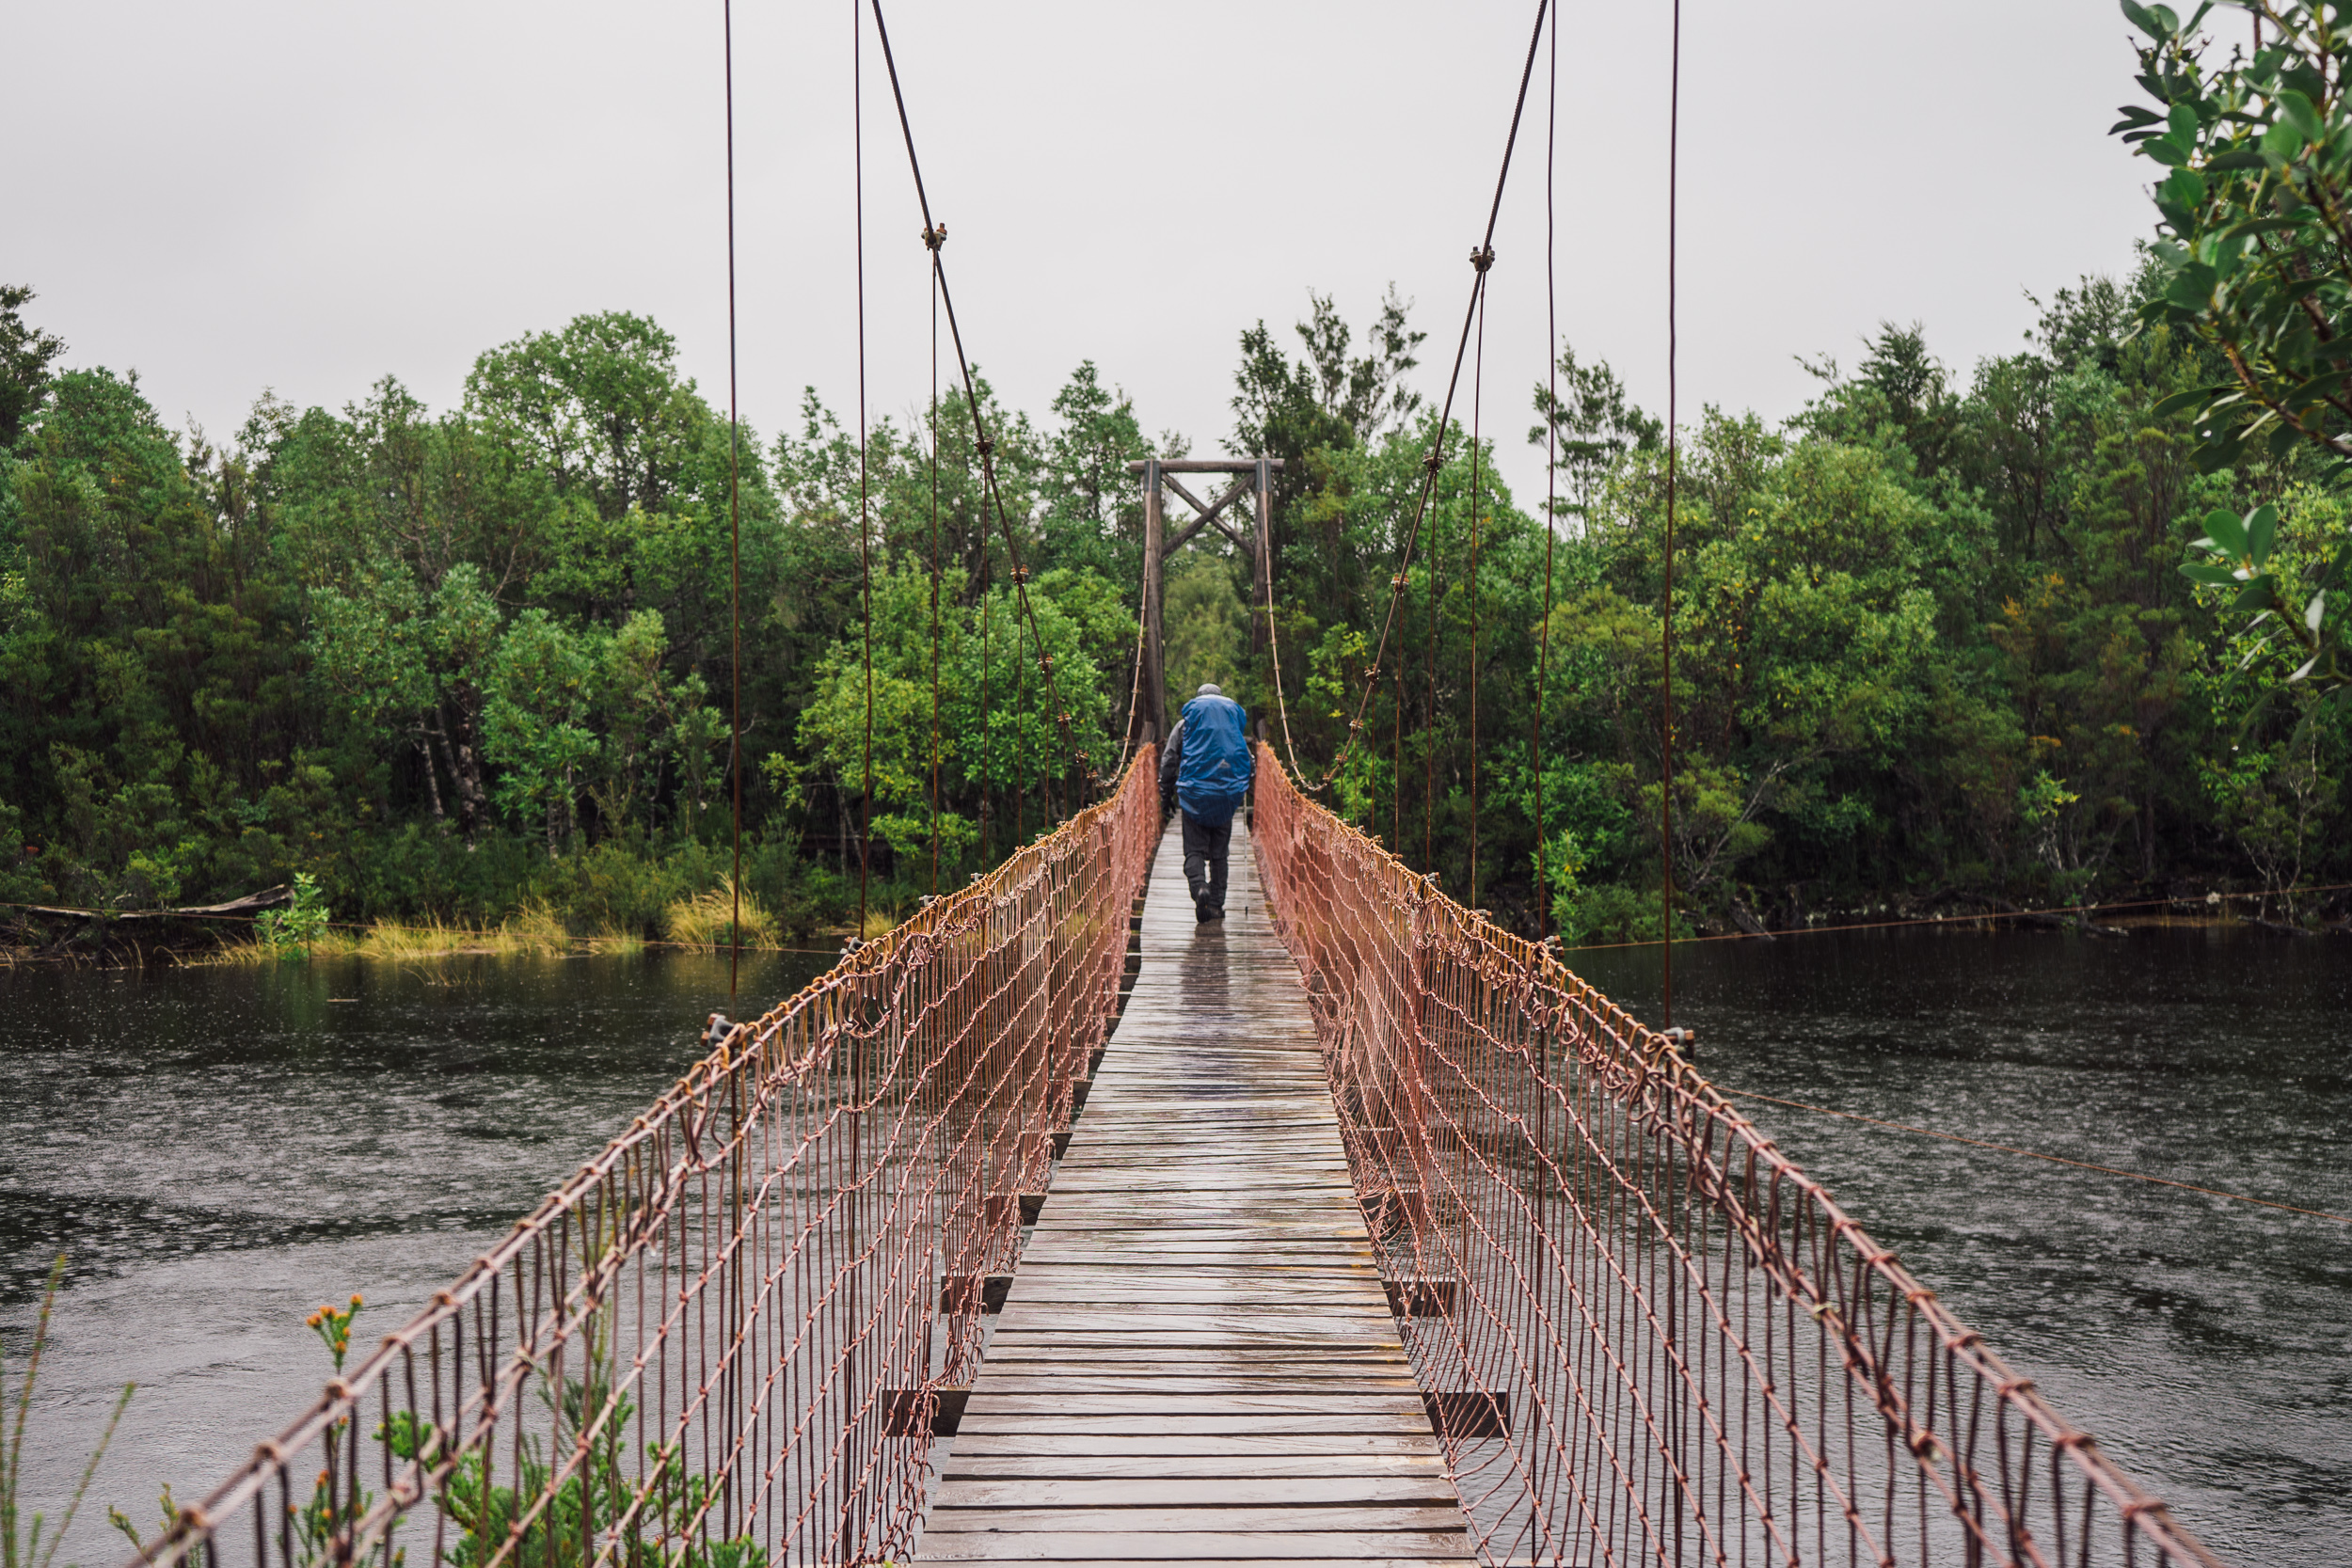 Day 1 of the hike in Tantauco Park on the Island of Chiloé  (photo by Andreea Lotak)